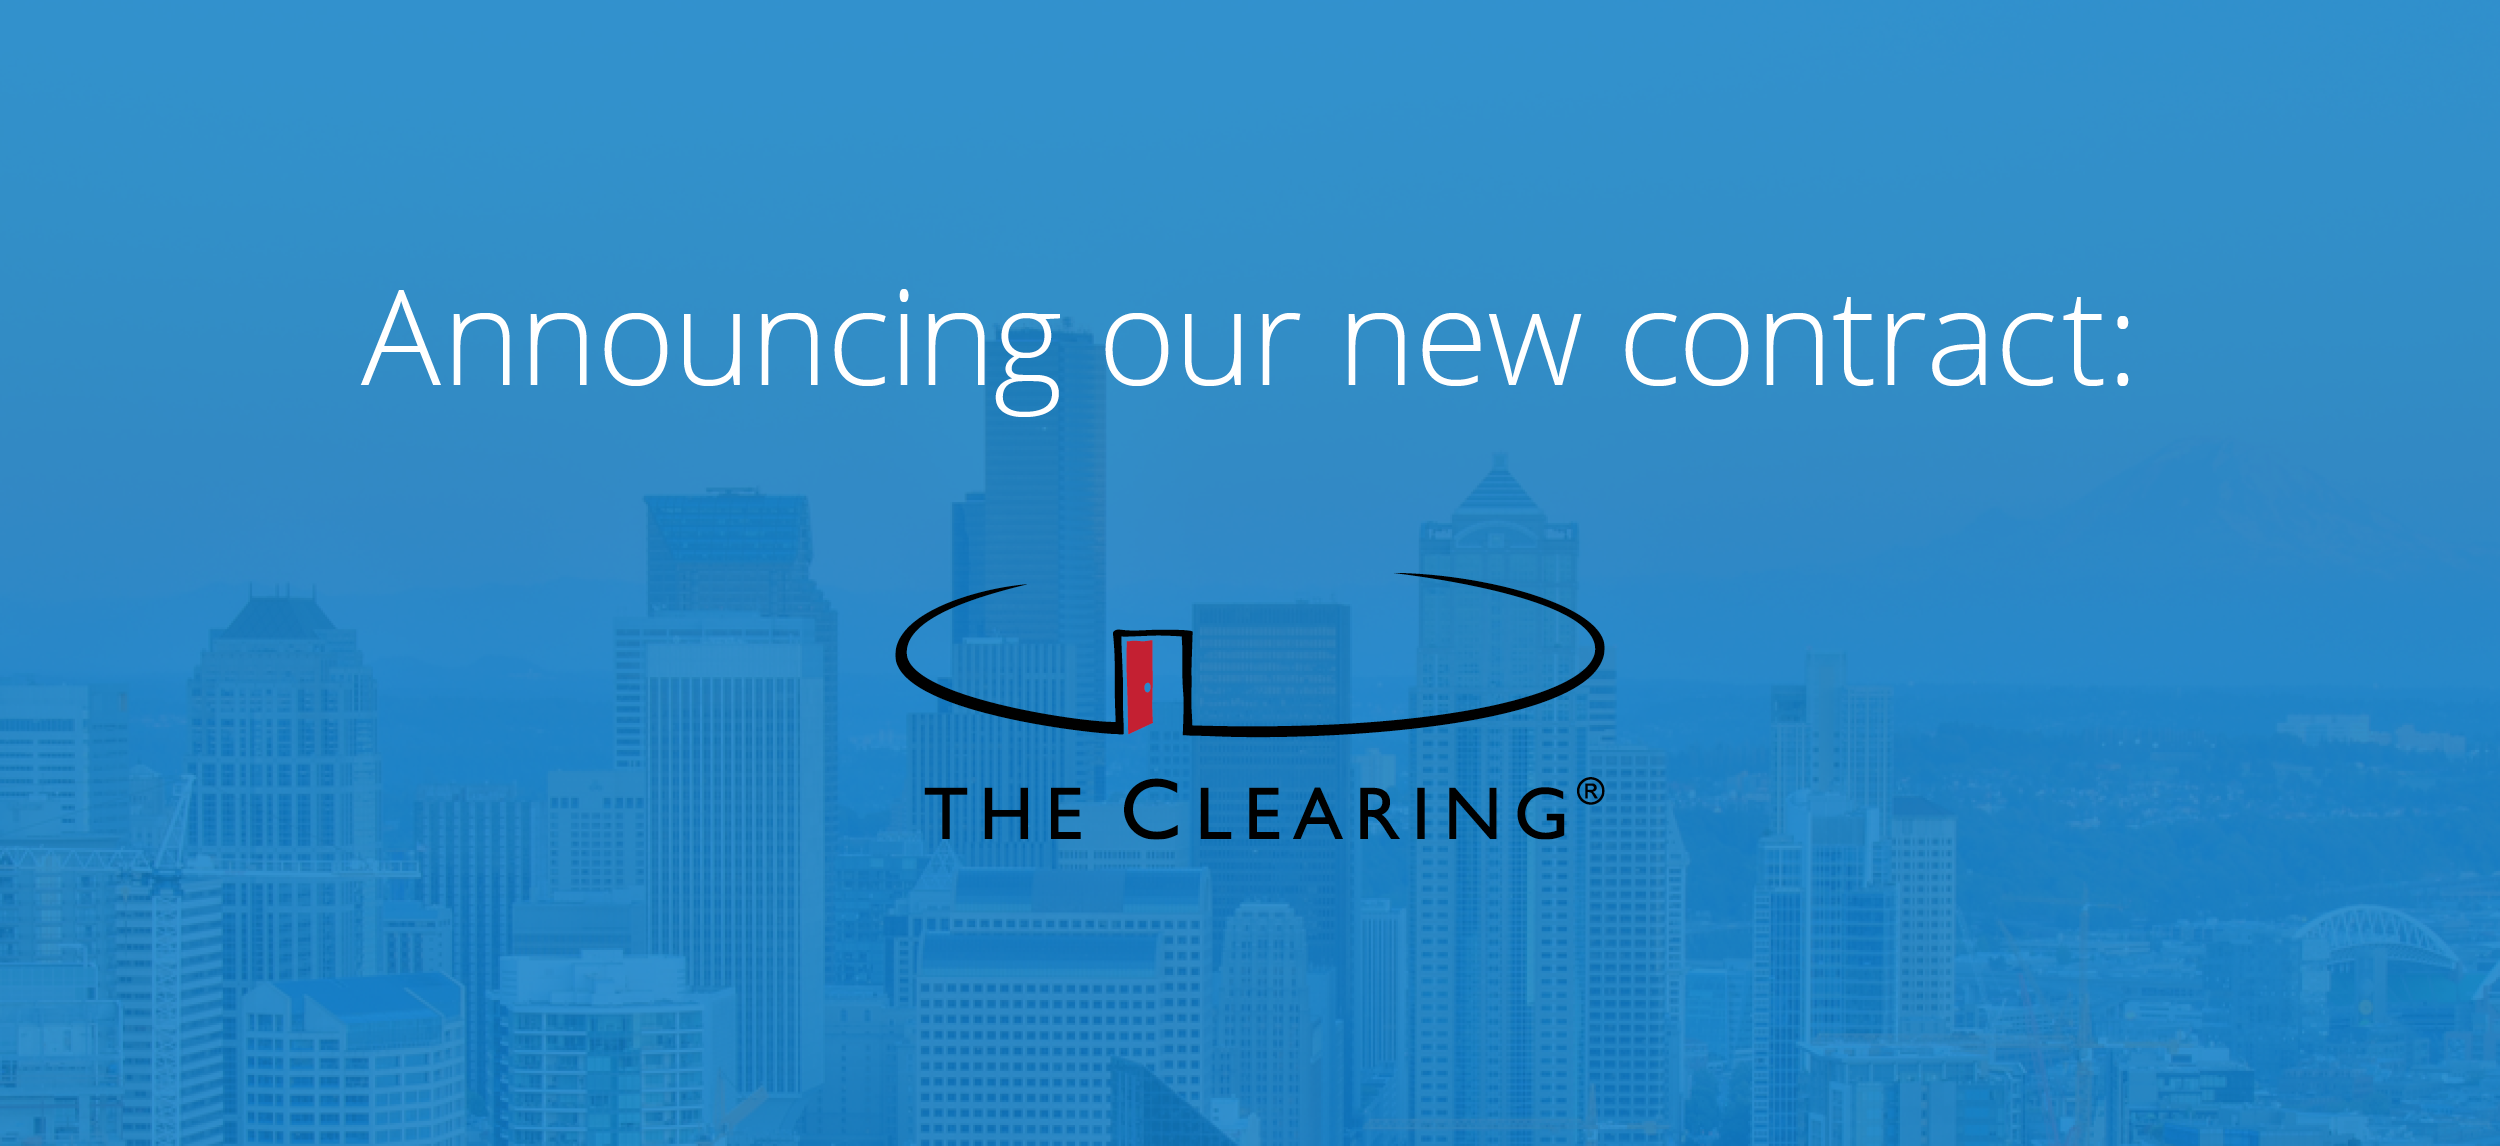 Announcing The Clearing: Our Newest Contract